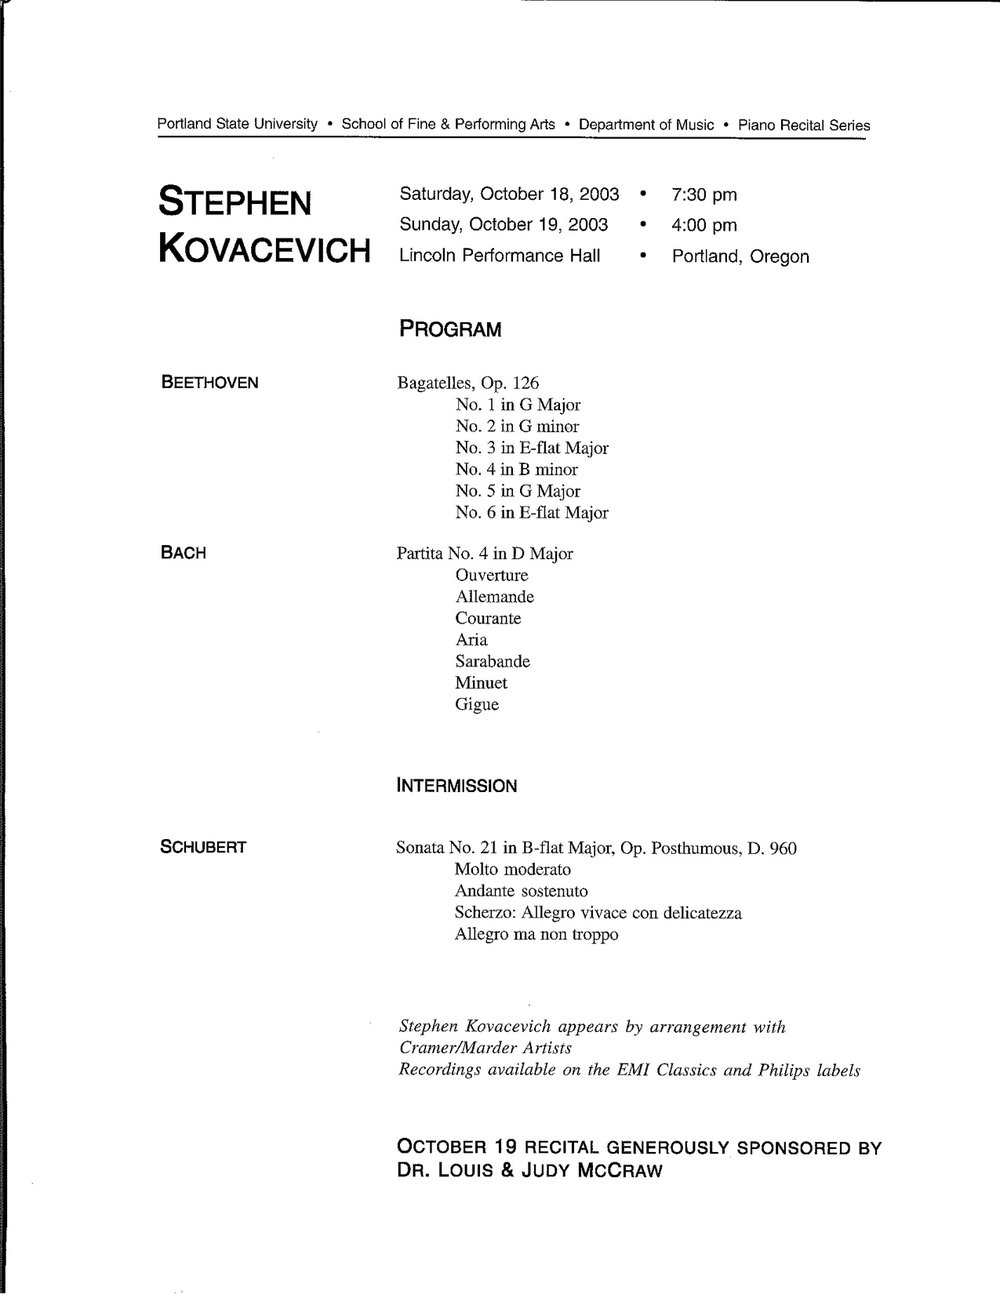 Kovacevich03-04_Program2.jpg